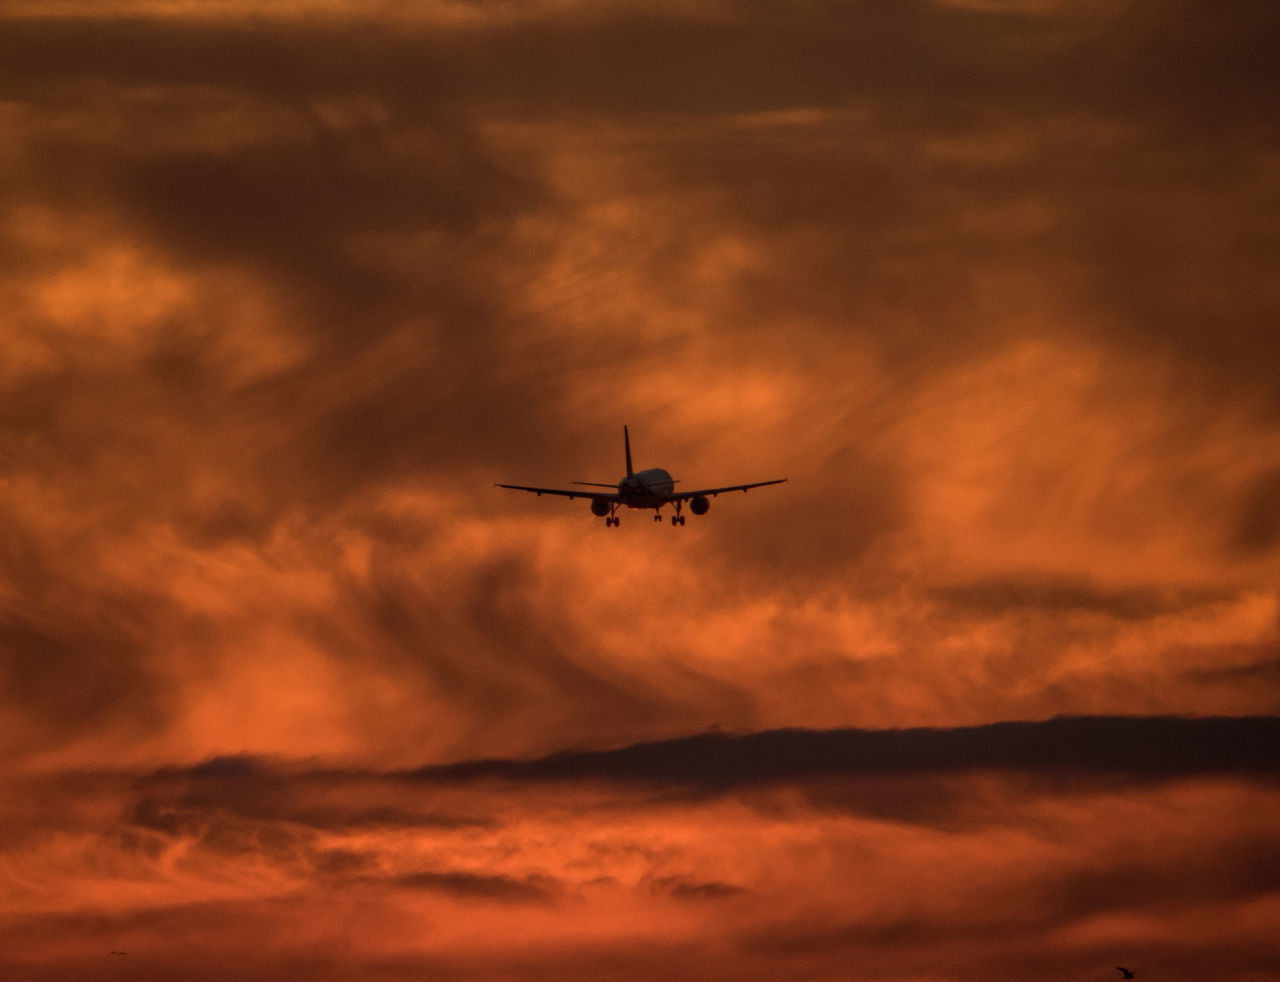 Beautiful stock photos of plane, sunset, transportation, flying, silhouette